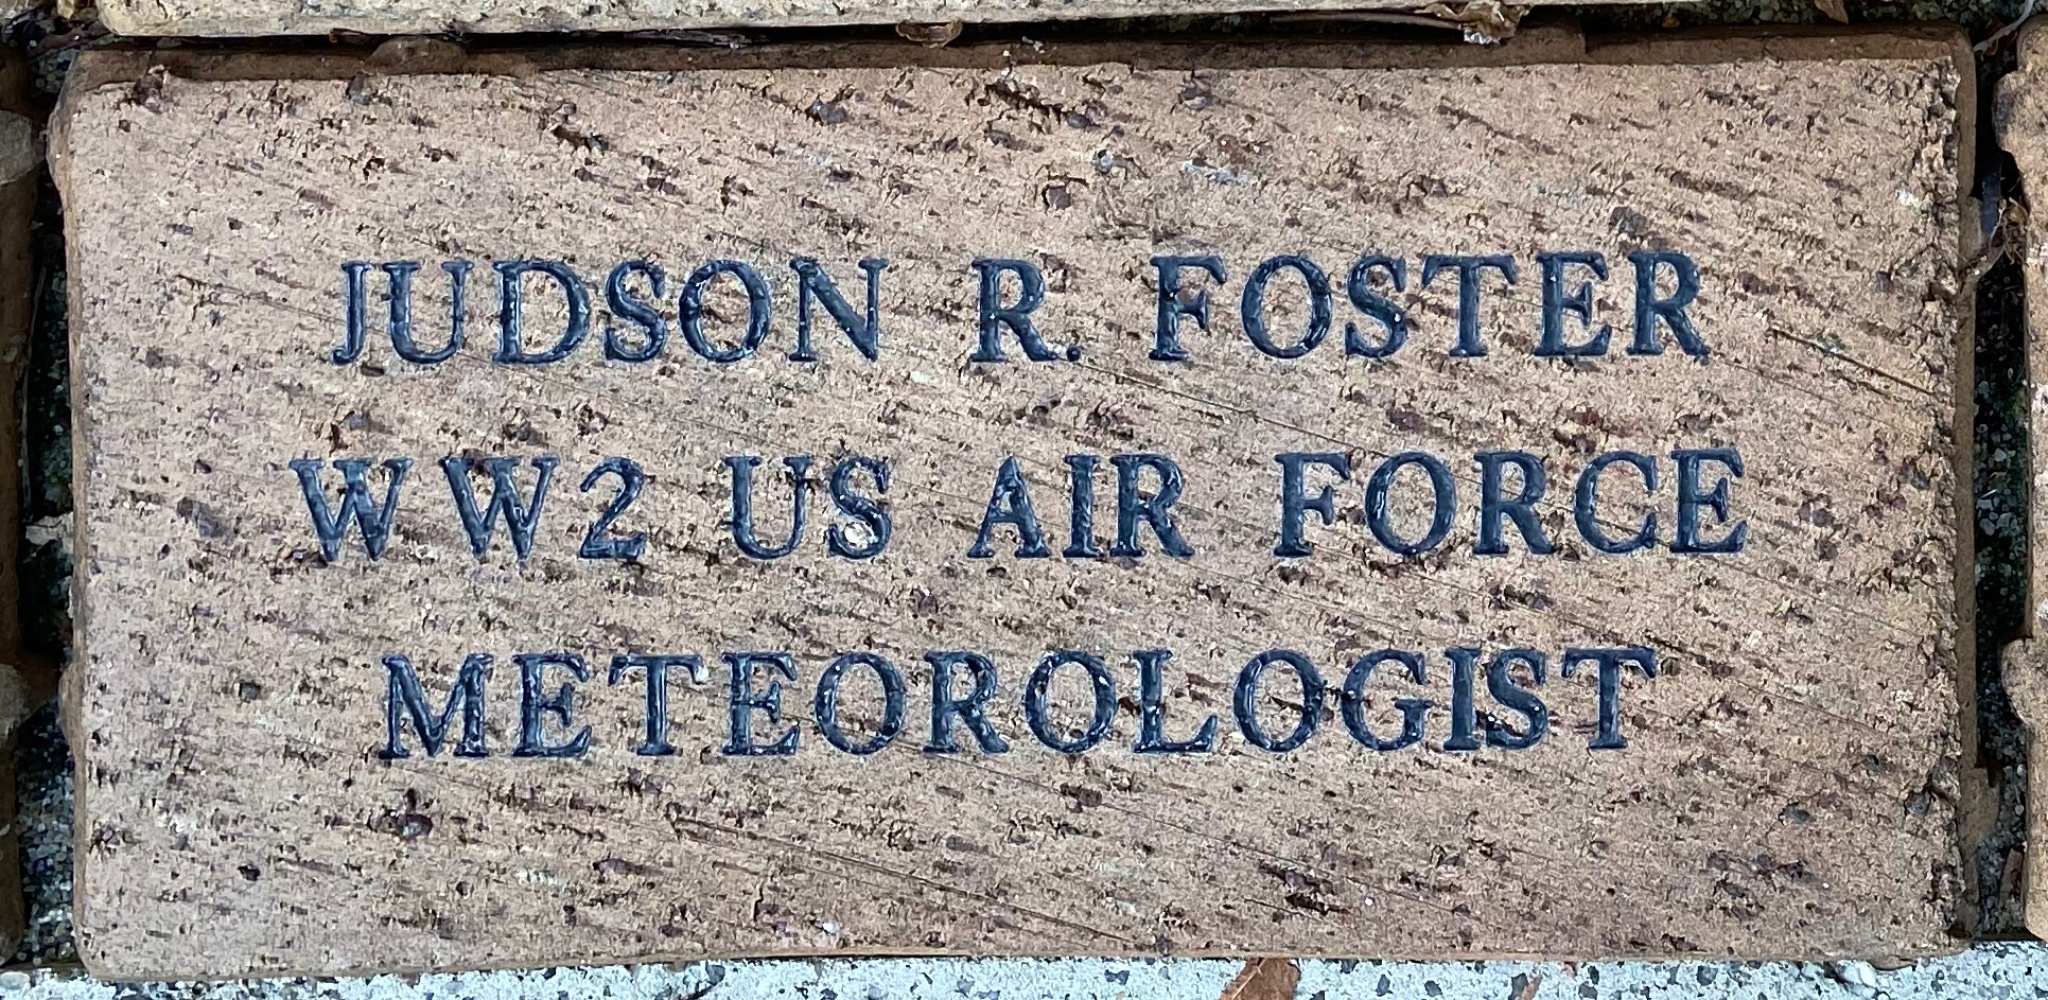 JUDSON R FOSTER WW2 US AIRFORCE METEOROLOGIST